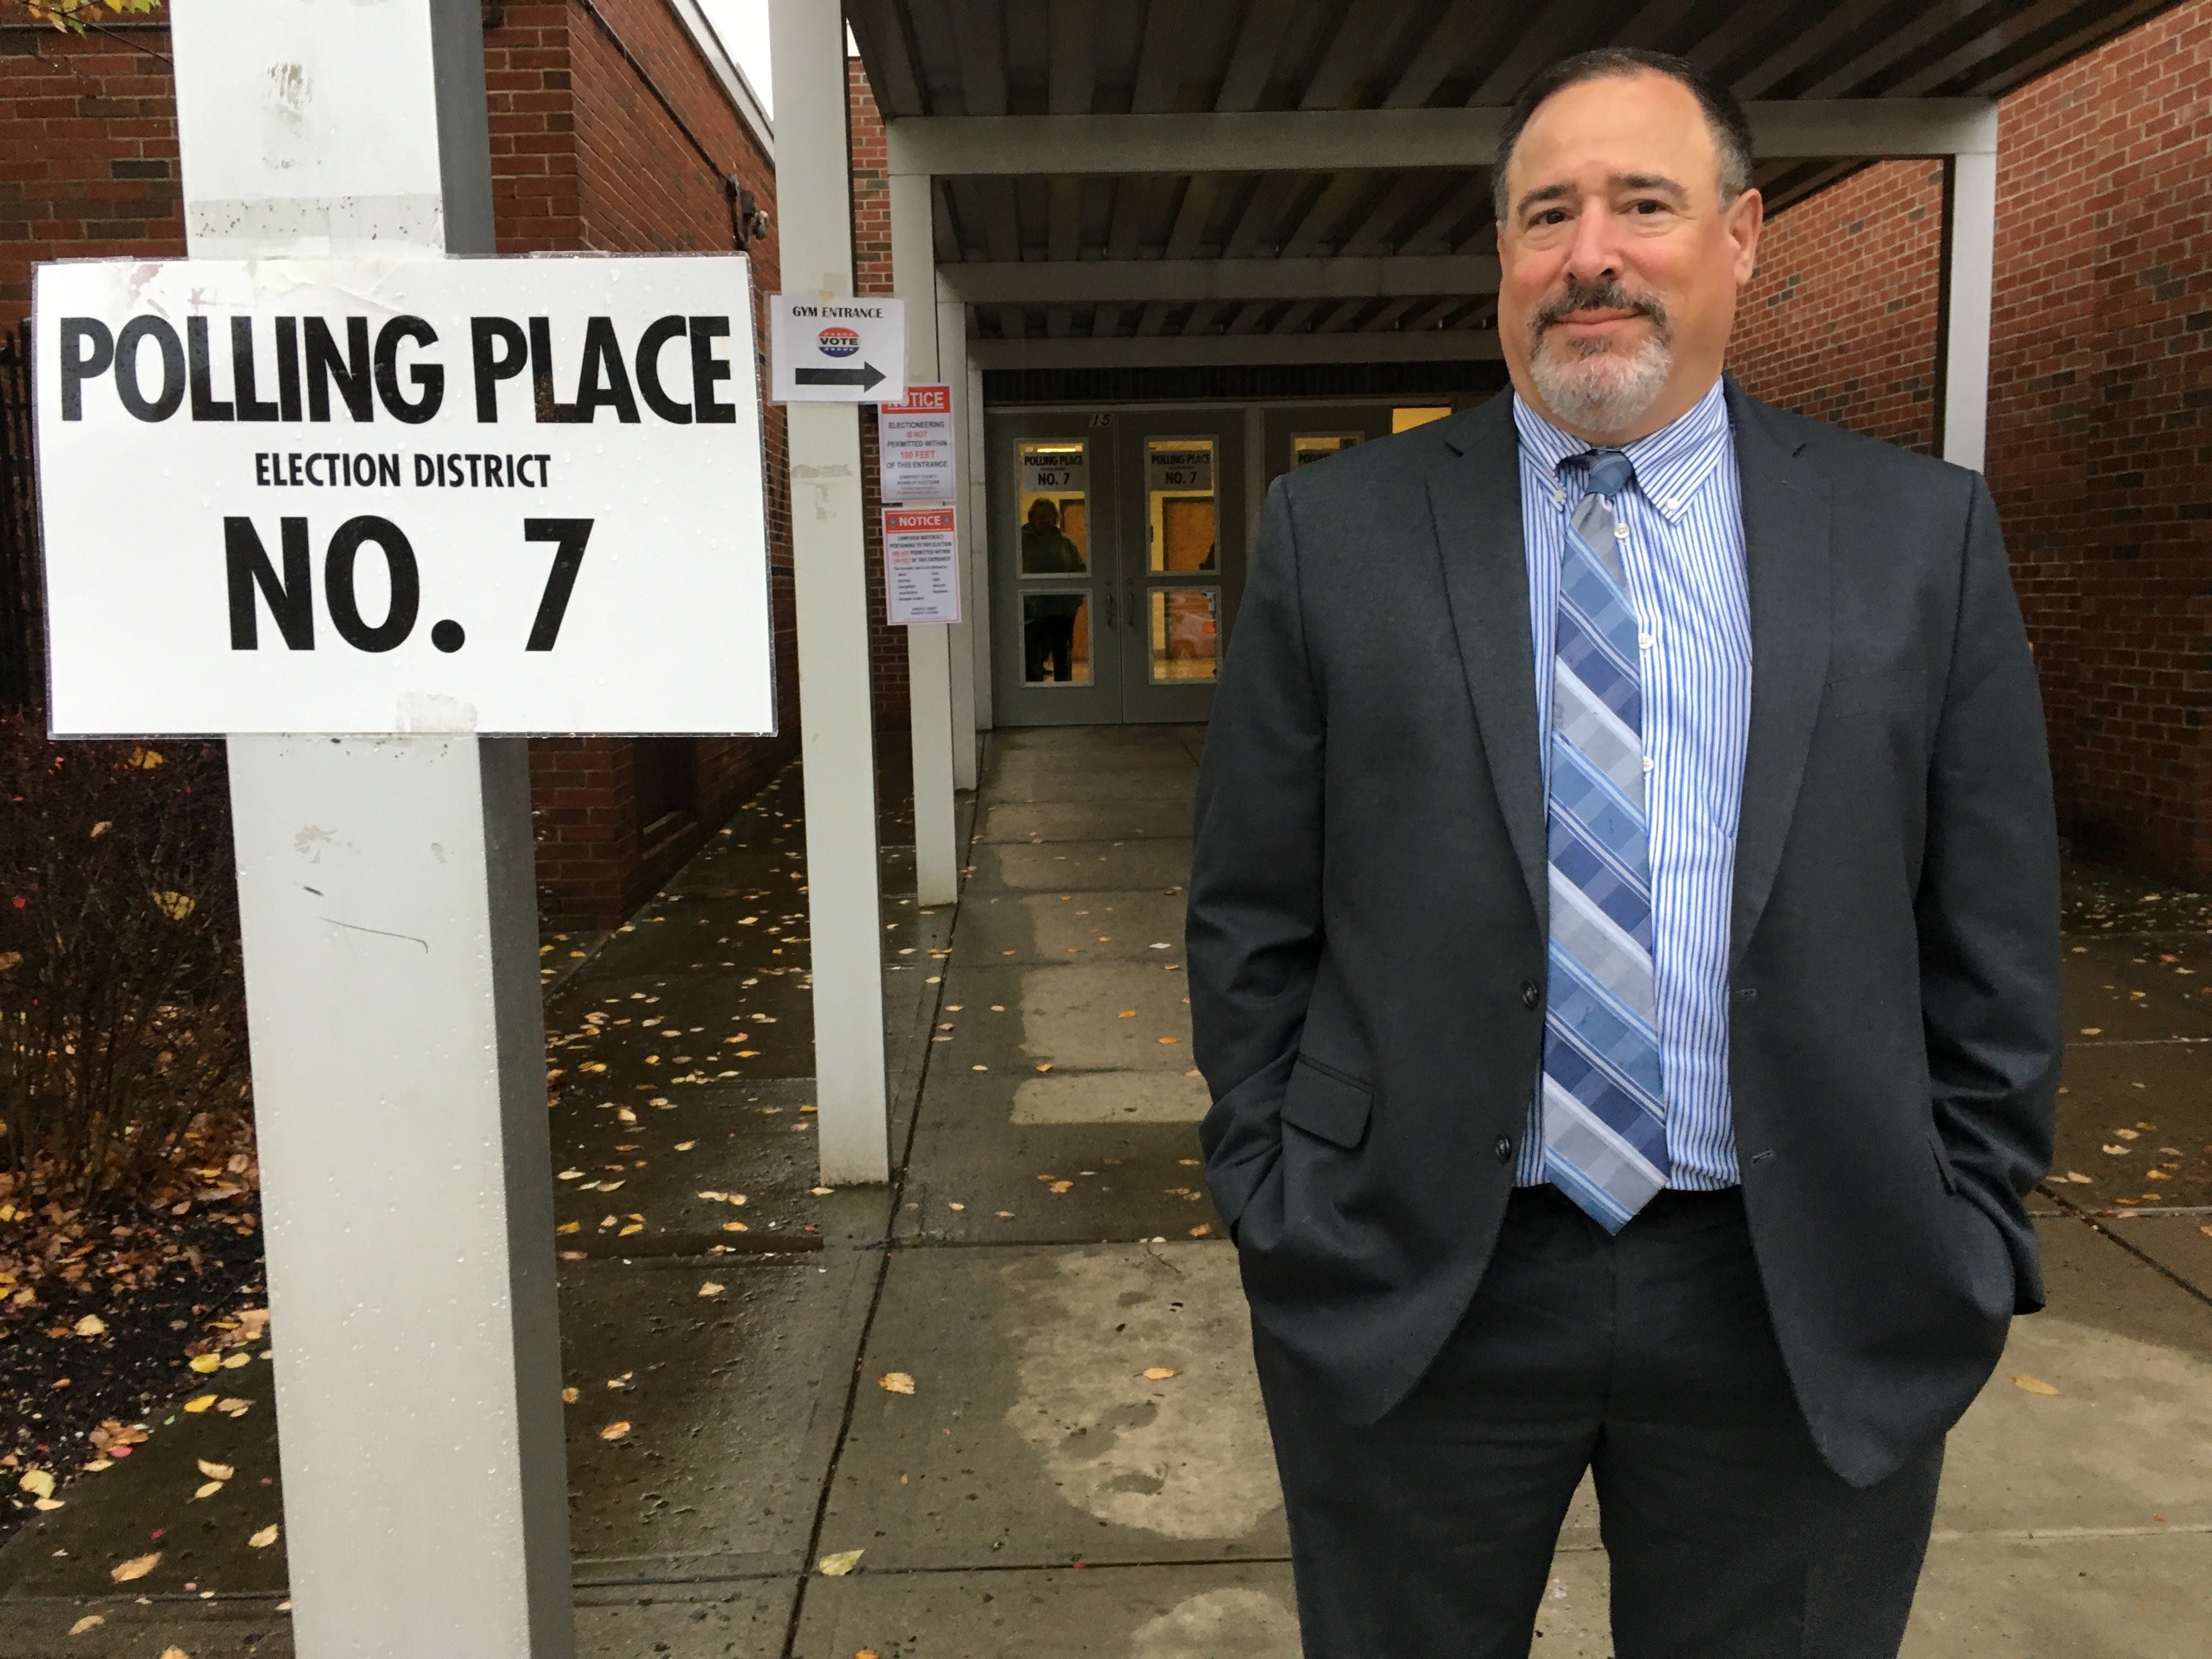 Michael Torrablbas voted at Vander Veer School in Somerville on Nov. 6.